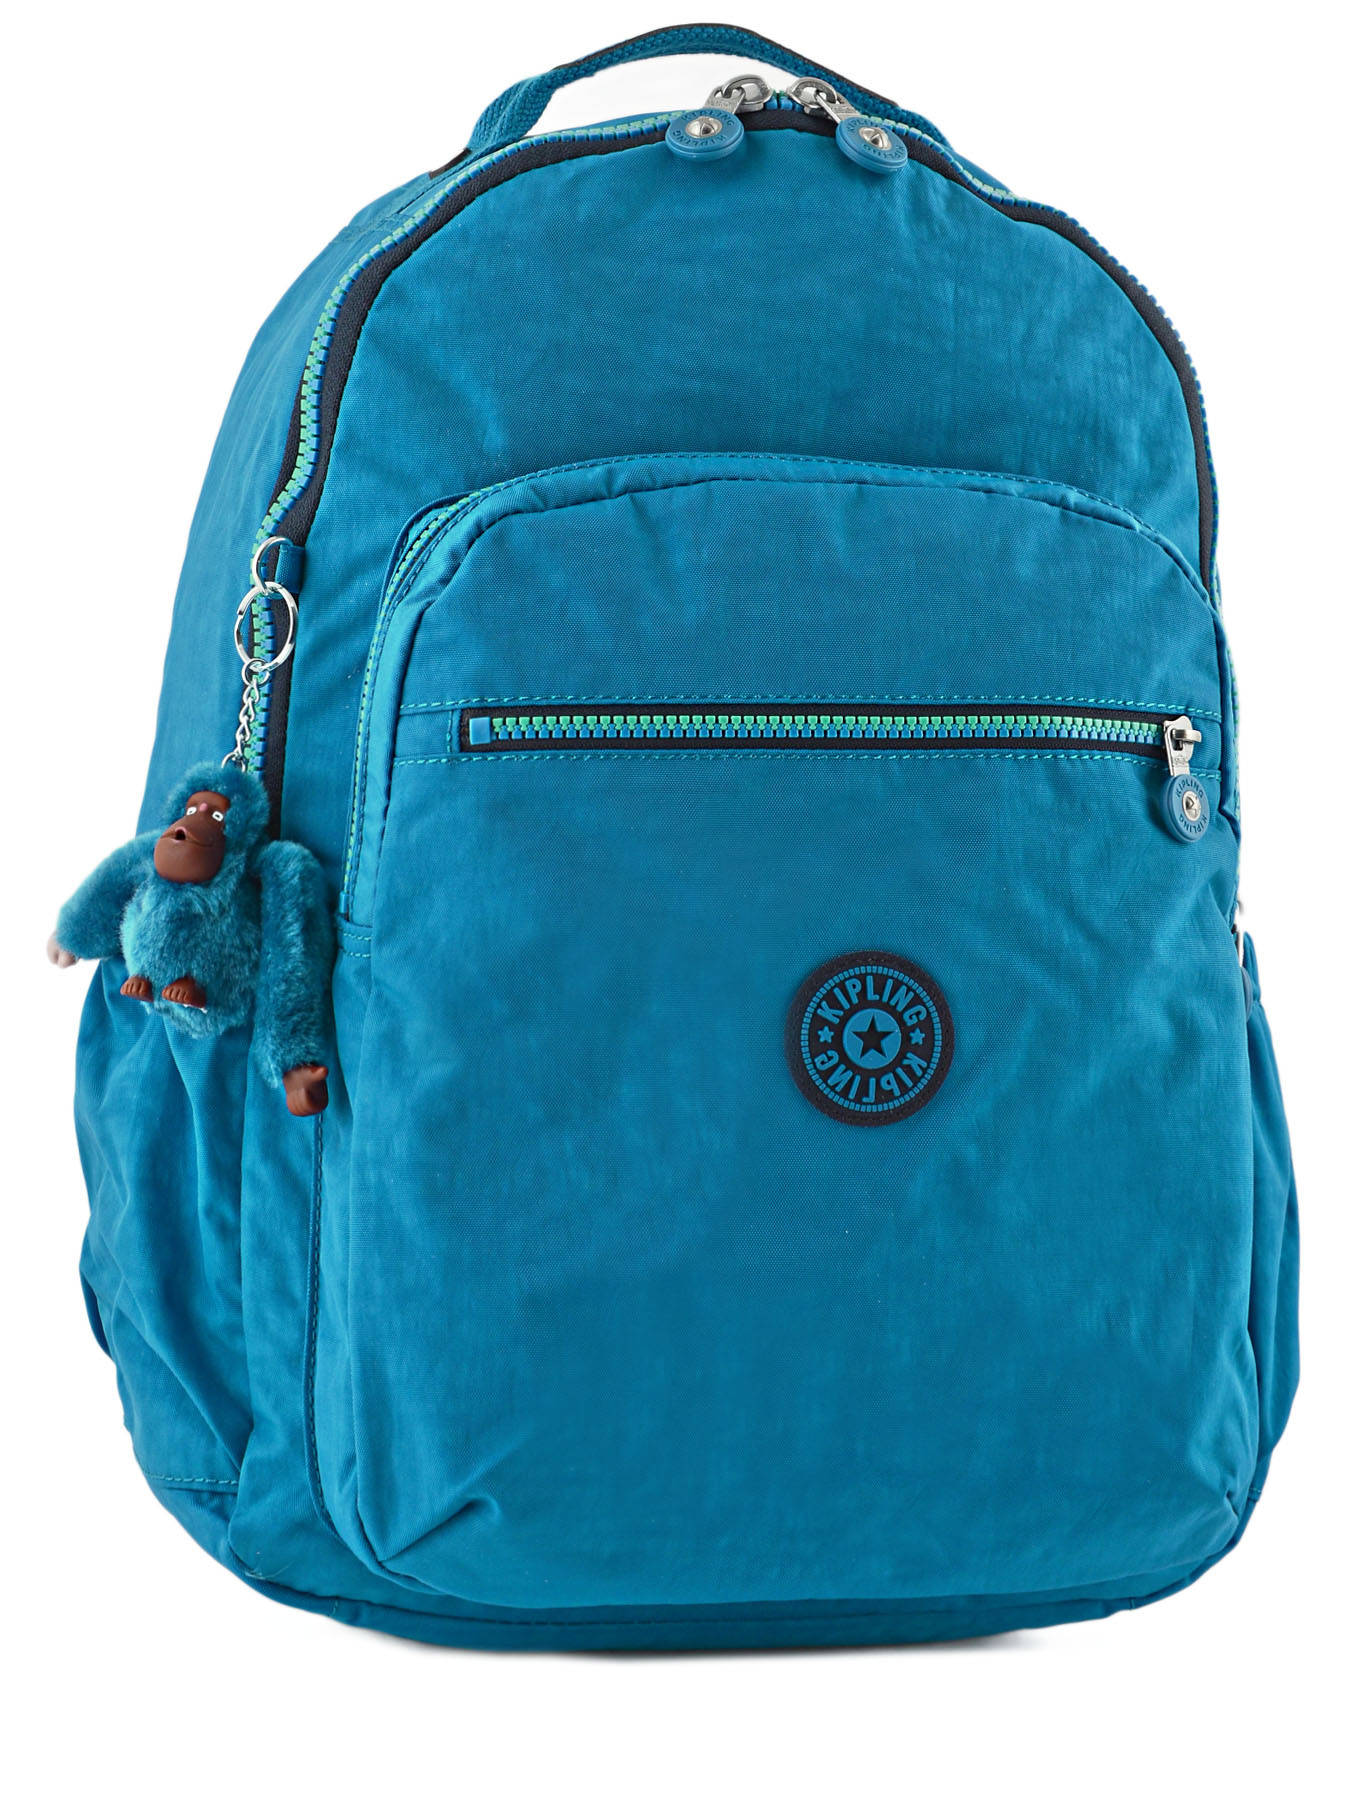 9bc4006afd0 Rugzak 1 Compartiment + Pc 15'' Kipling Blauw back to school 21305 ...